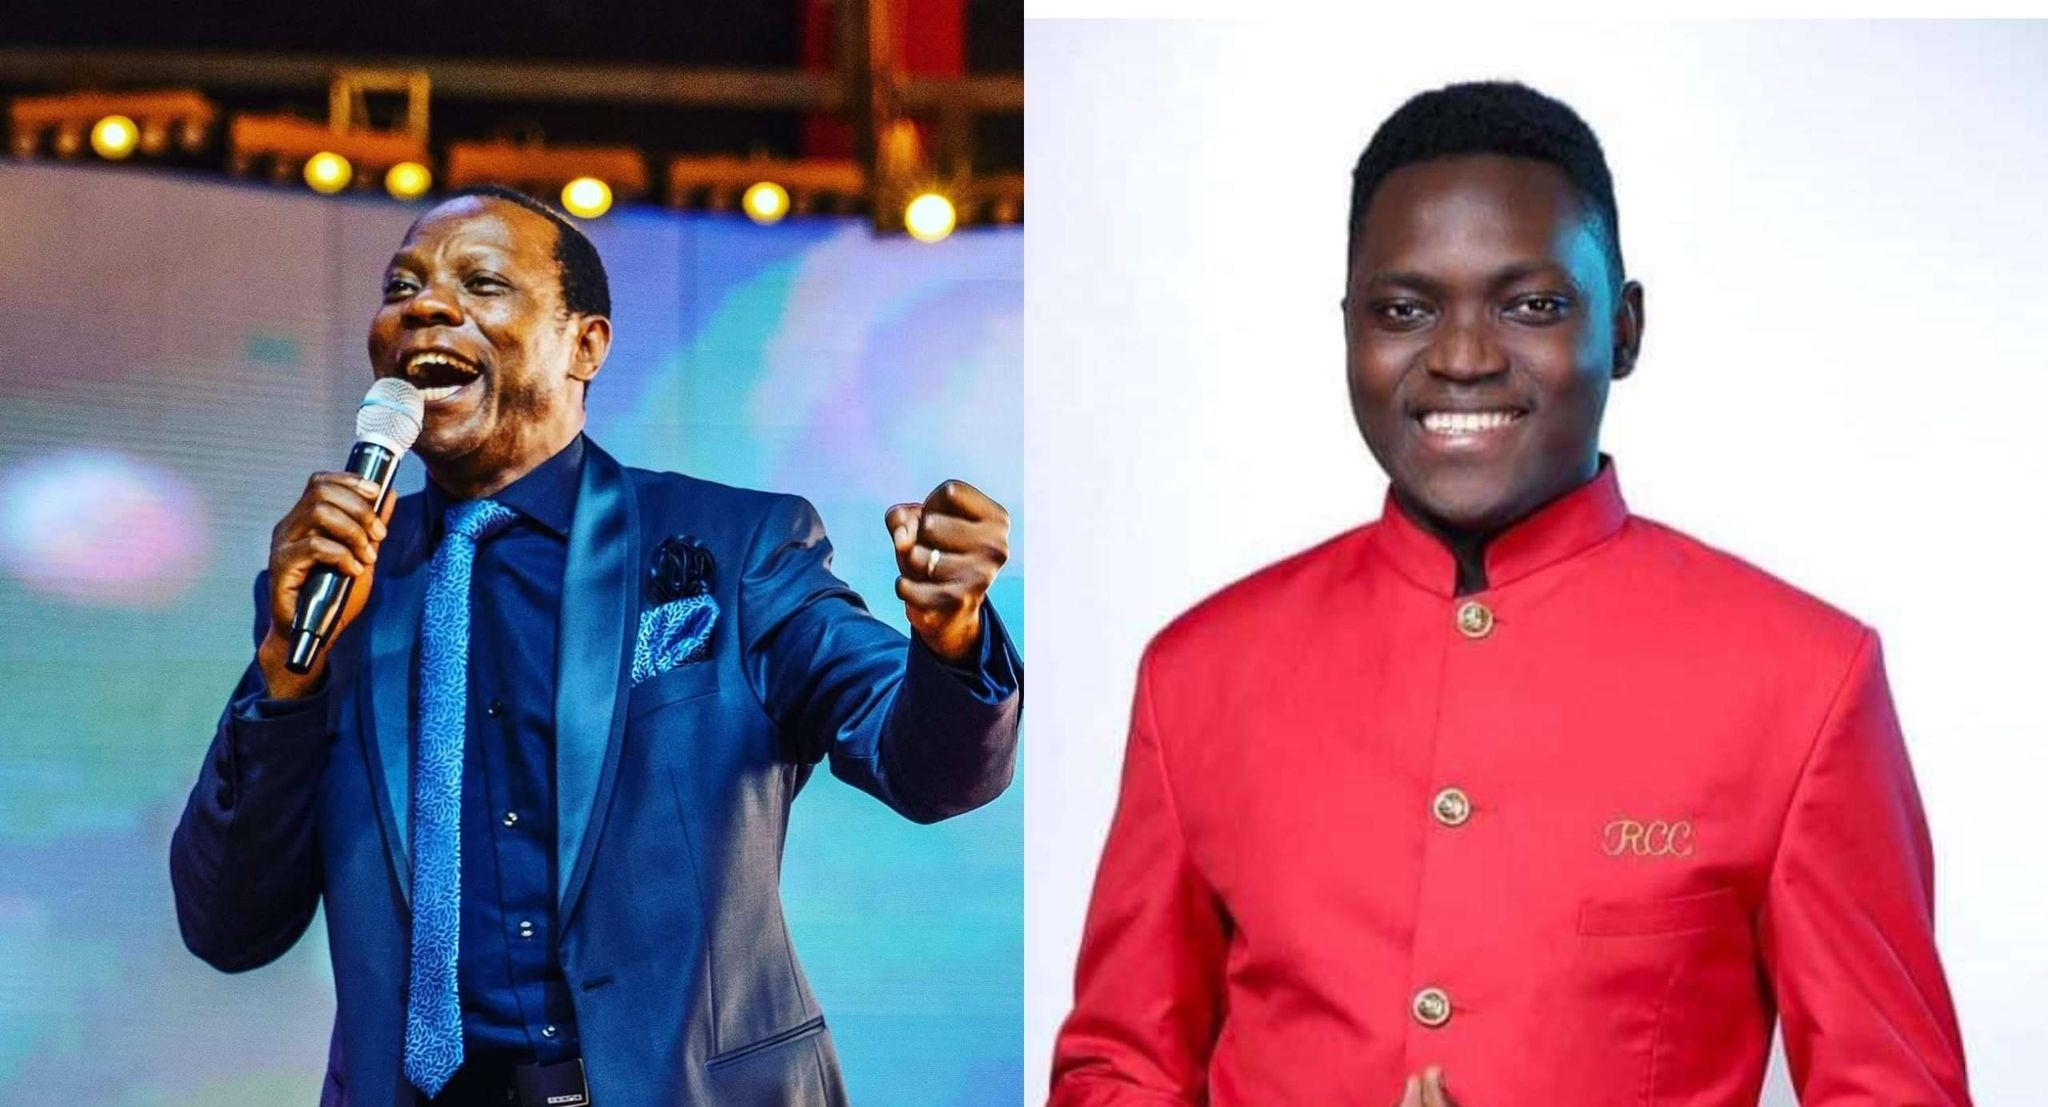 Pastor Jengo is a drunkard and a witch doctor - Pastor Senyonga